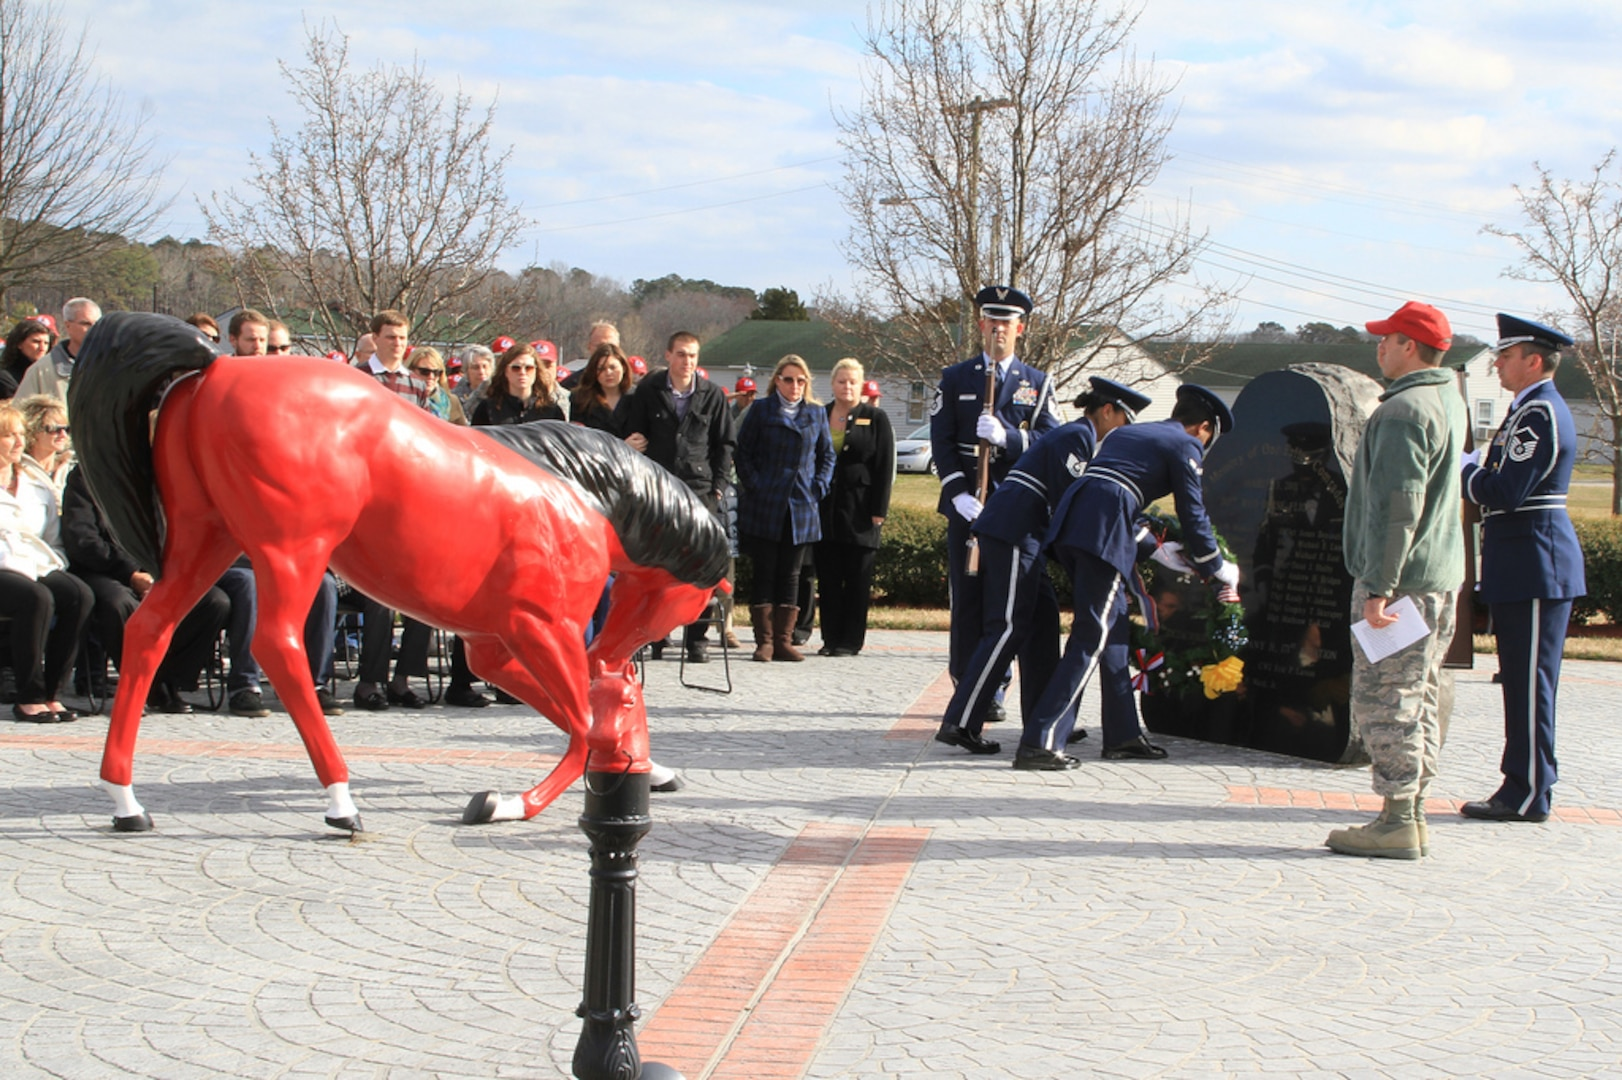 203rd RED HORSE memorial service honors 12th anniversary of fatal airplane crash